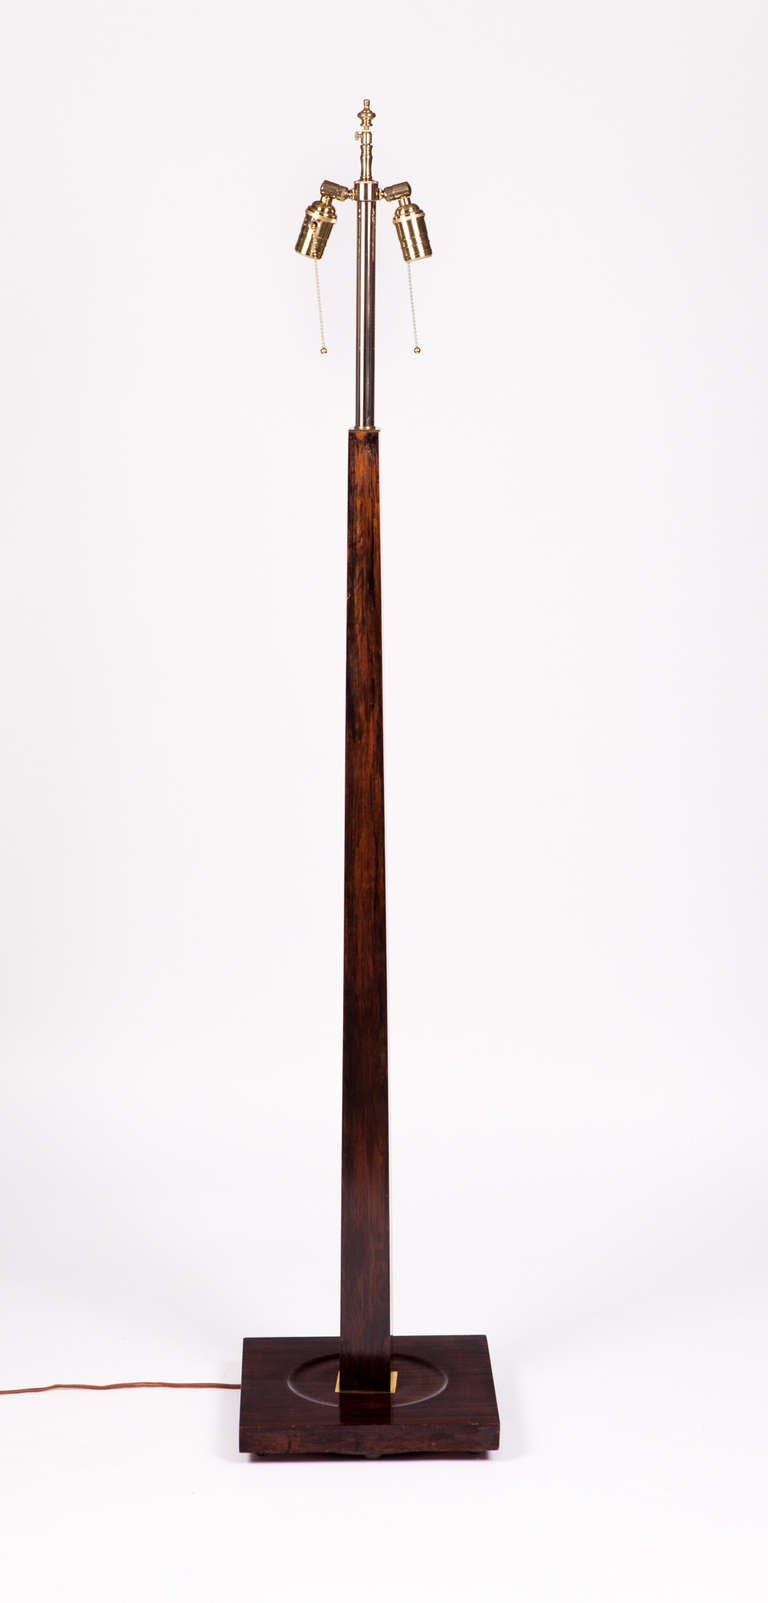 Exceptional tapering column floor lamp composed of one piece of solid Macassar ebony with brass hardware. Rewired with silk cord and double sockets.